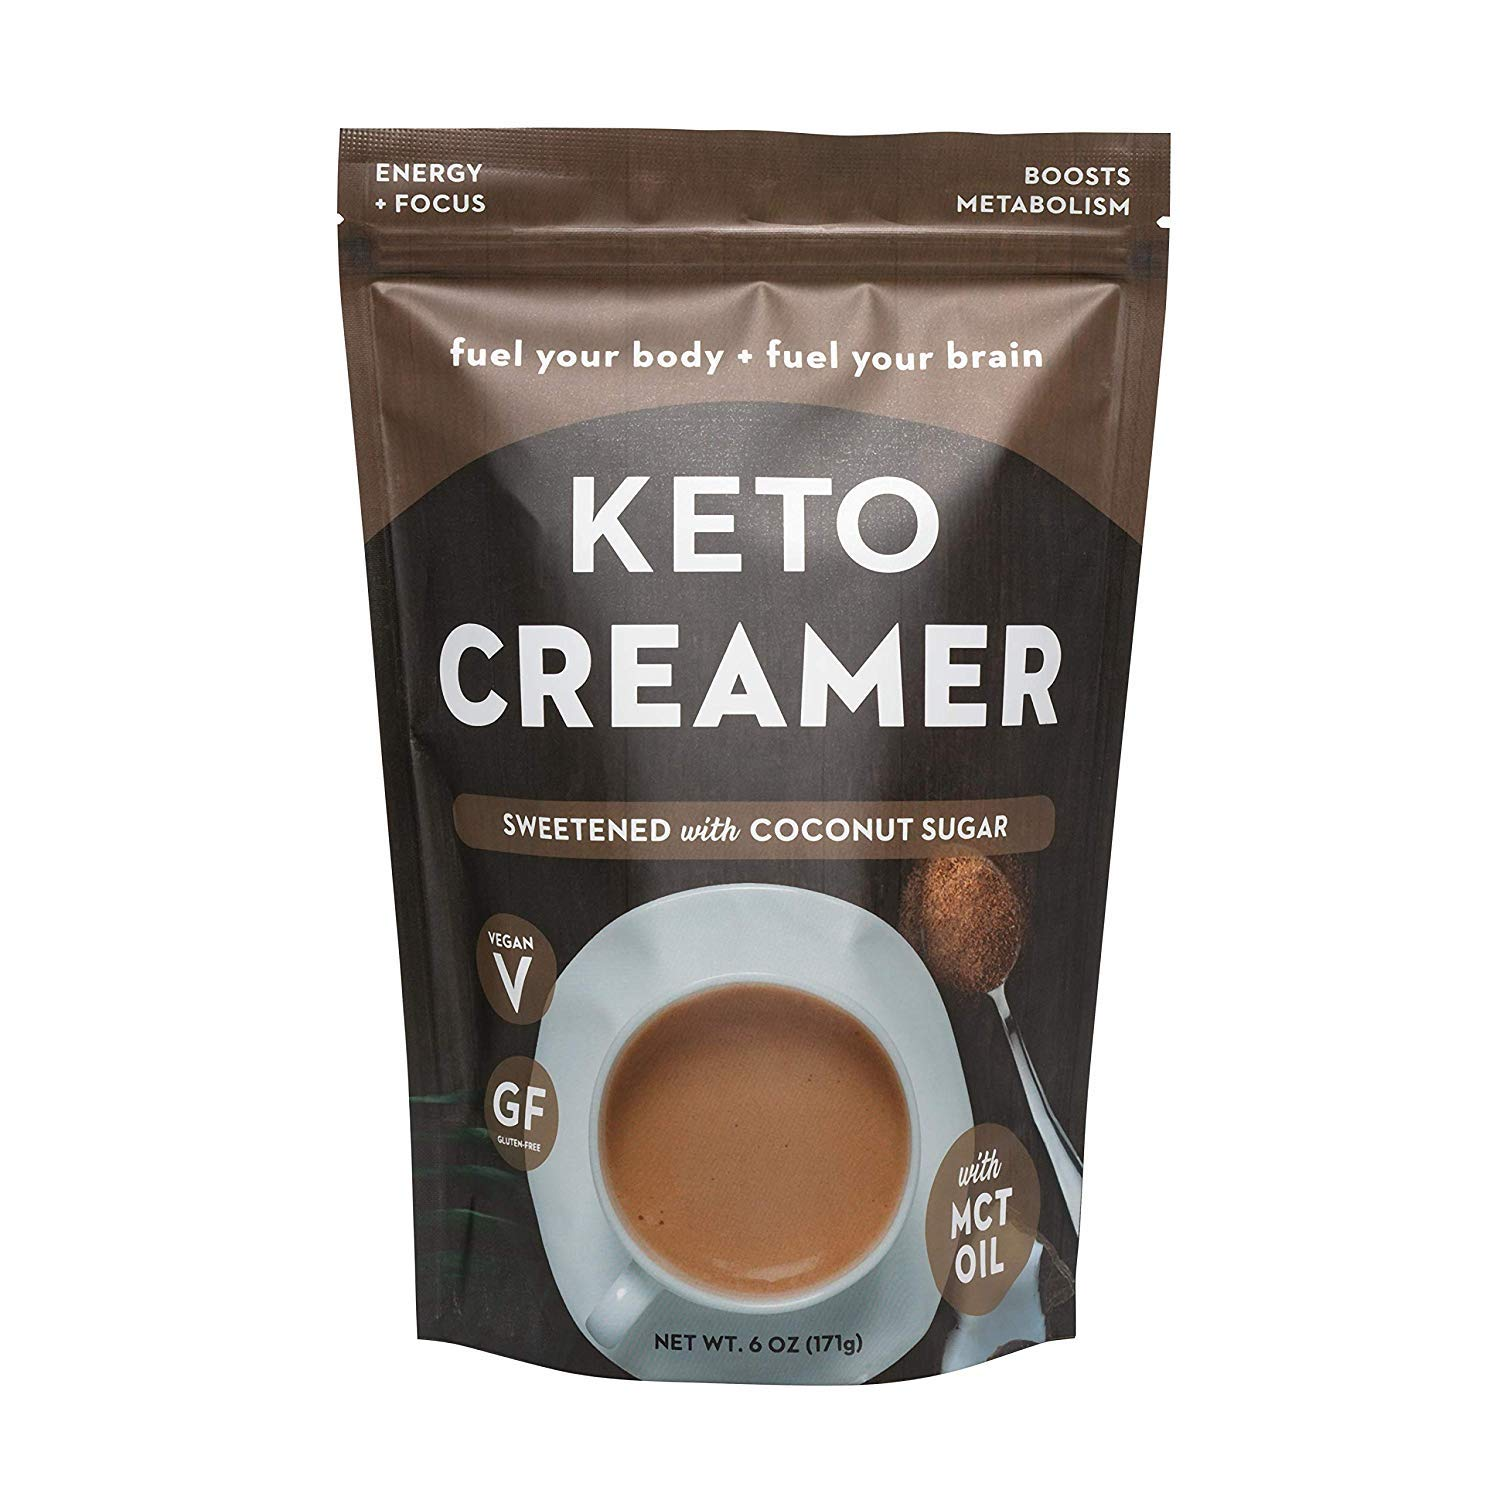 10. 360 Nutrition KETO Creamer with MCT Oil